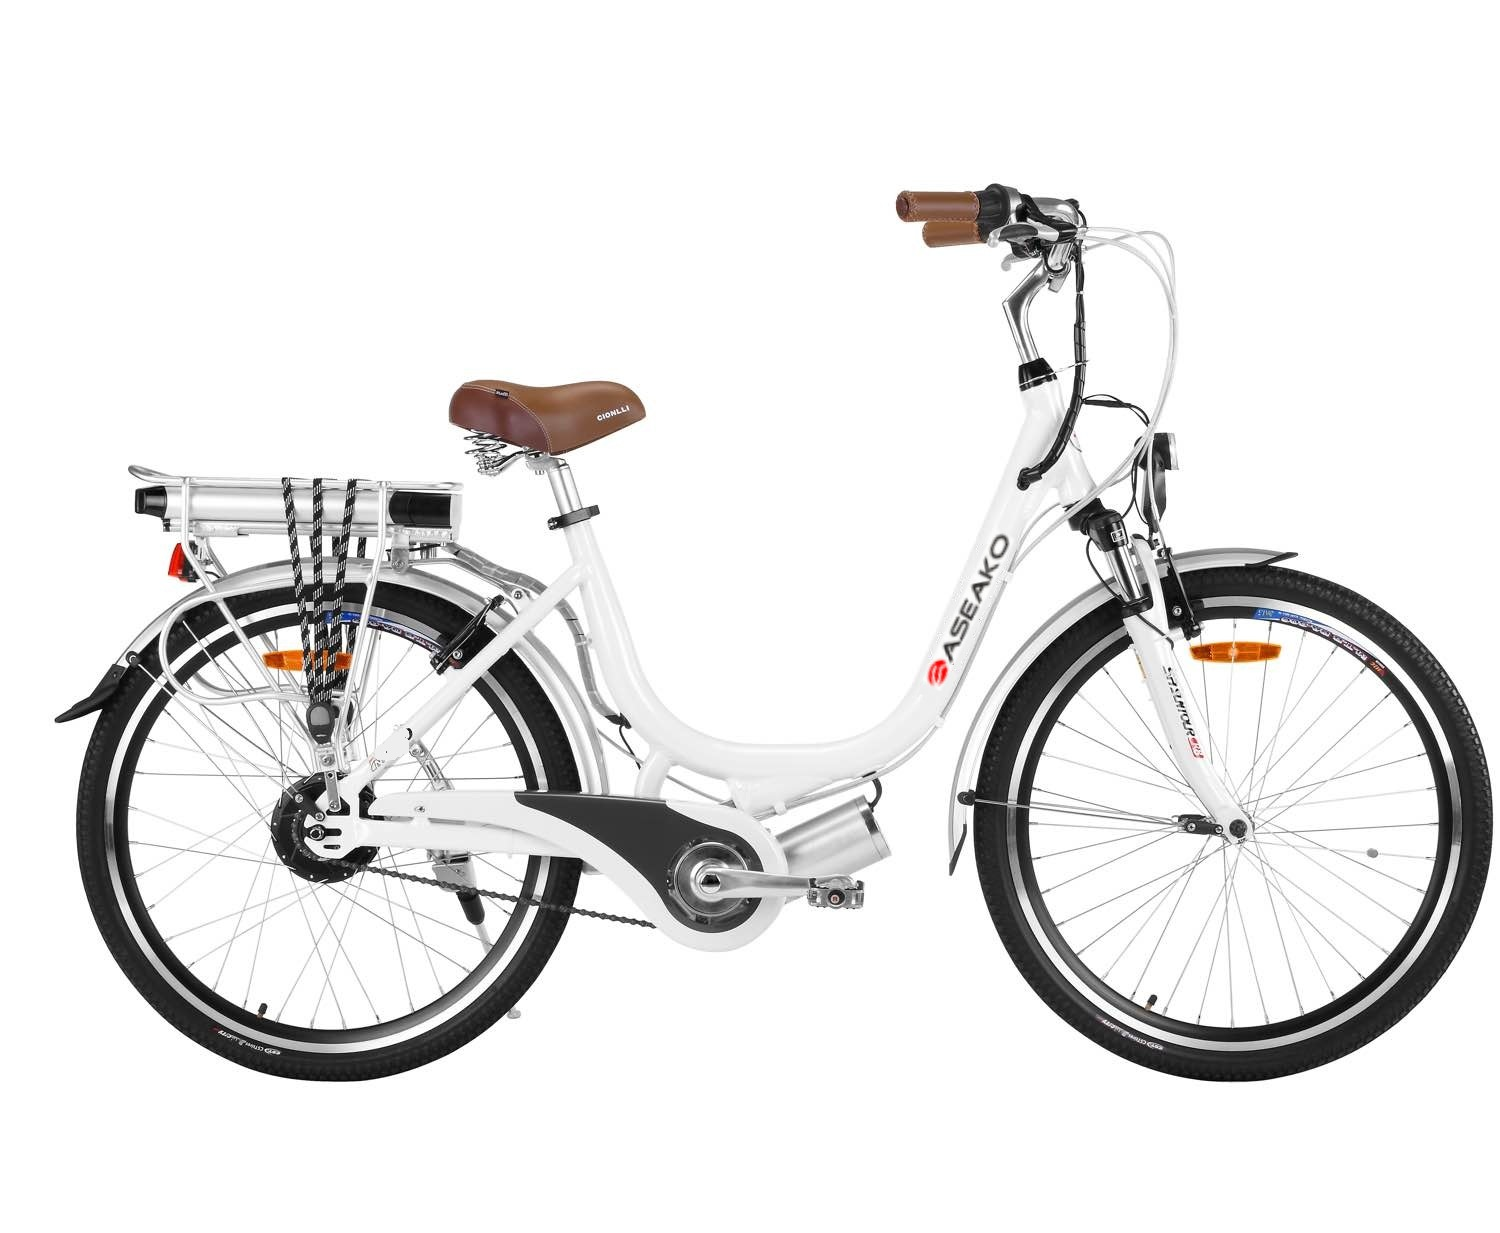 ASEAKO CRUISER II 250W ELECTRIC BIKE